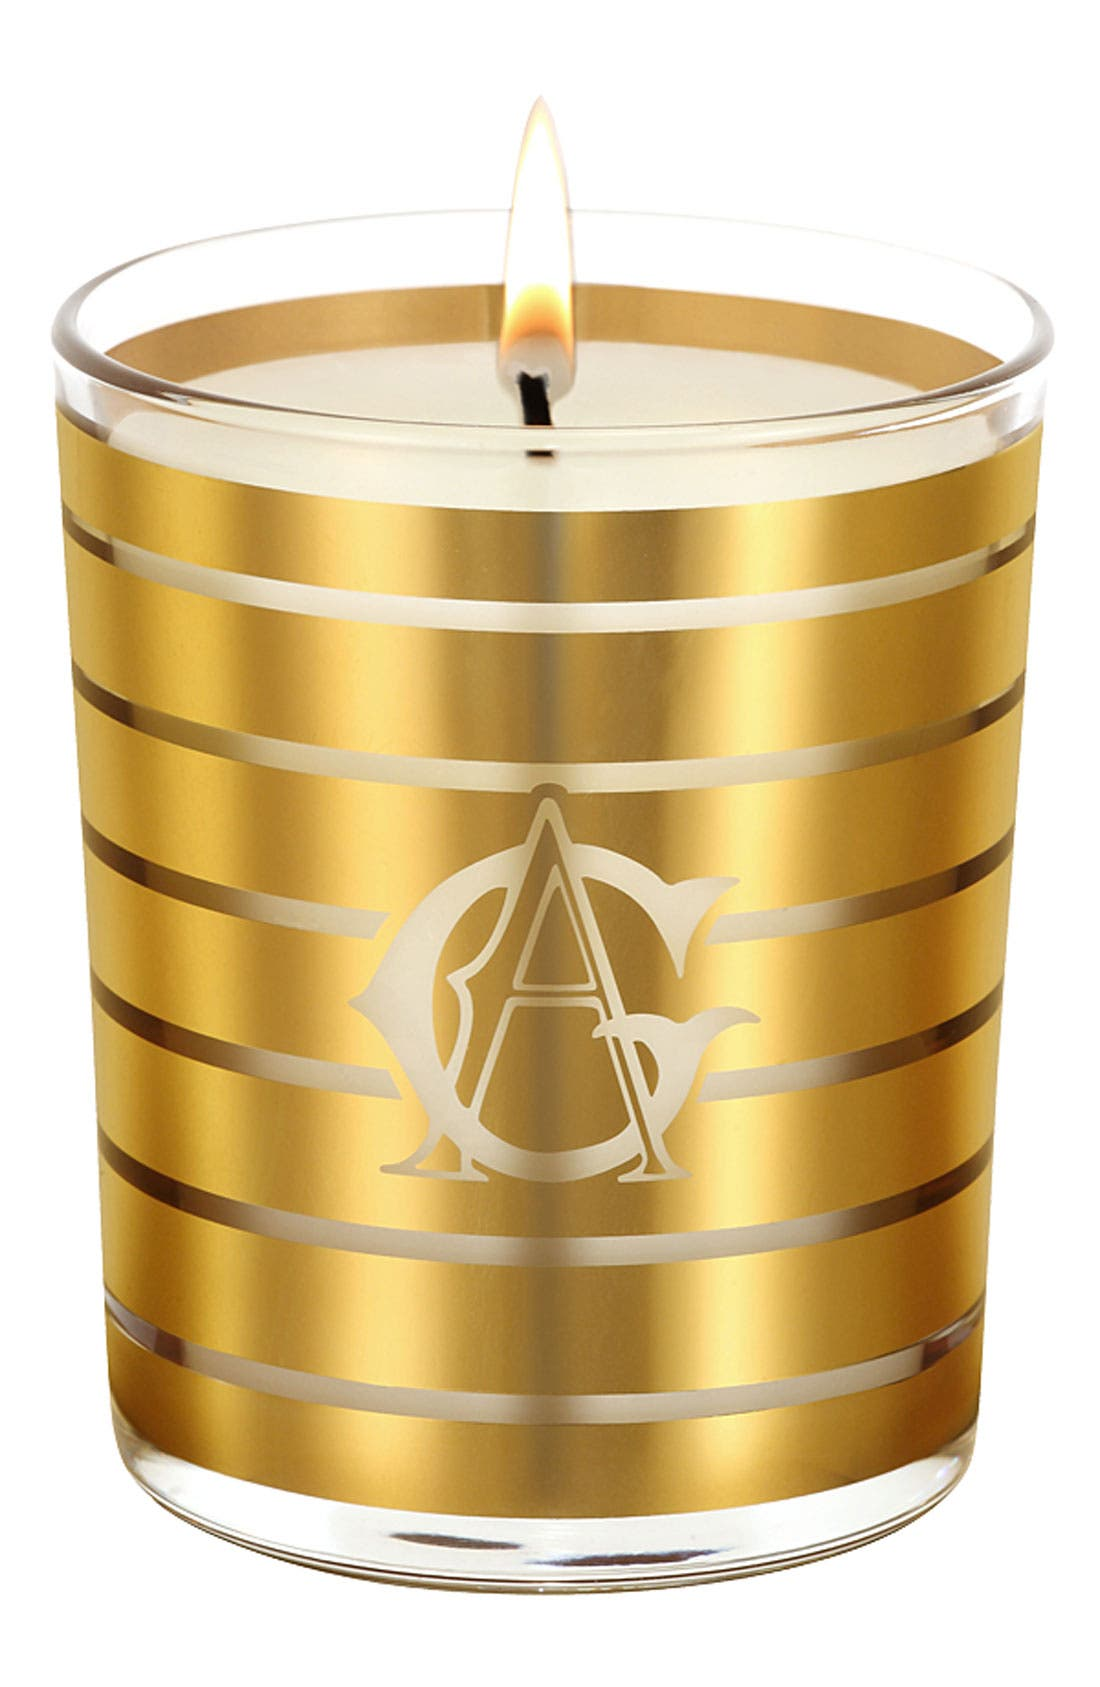 Main Image - Annick Goutal 'Noël' Gold Collector Candle